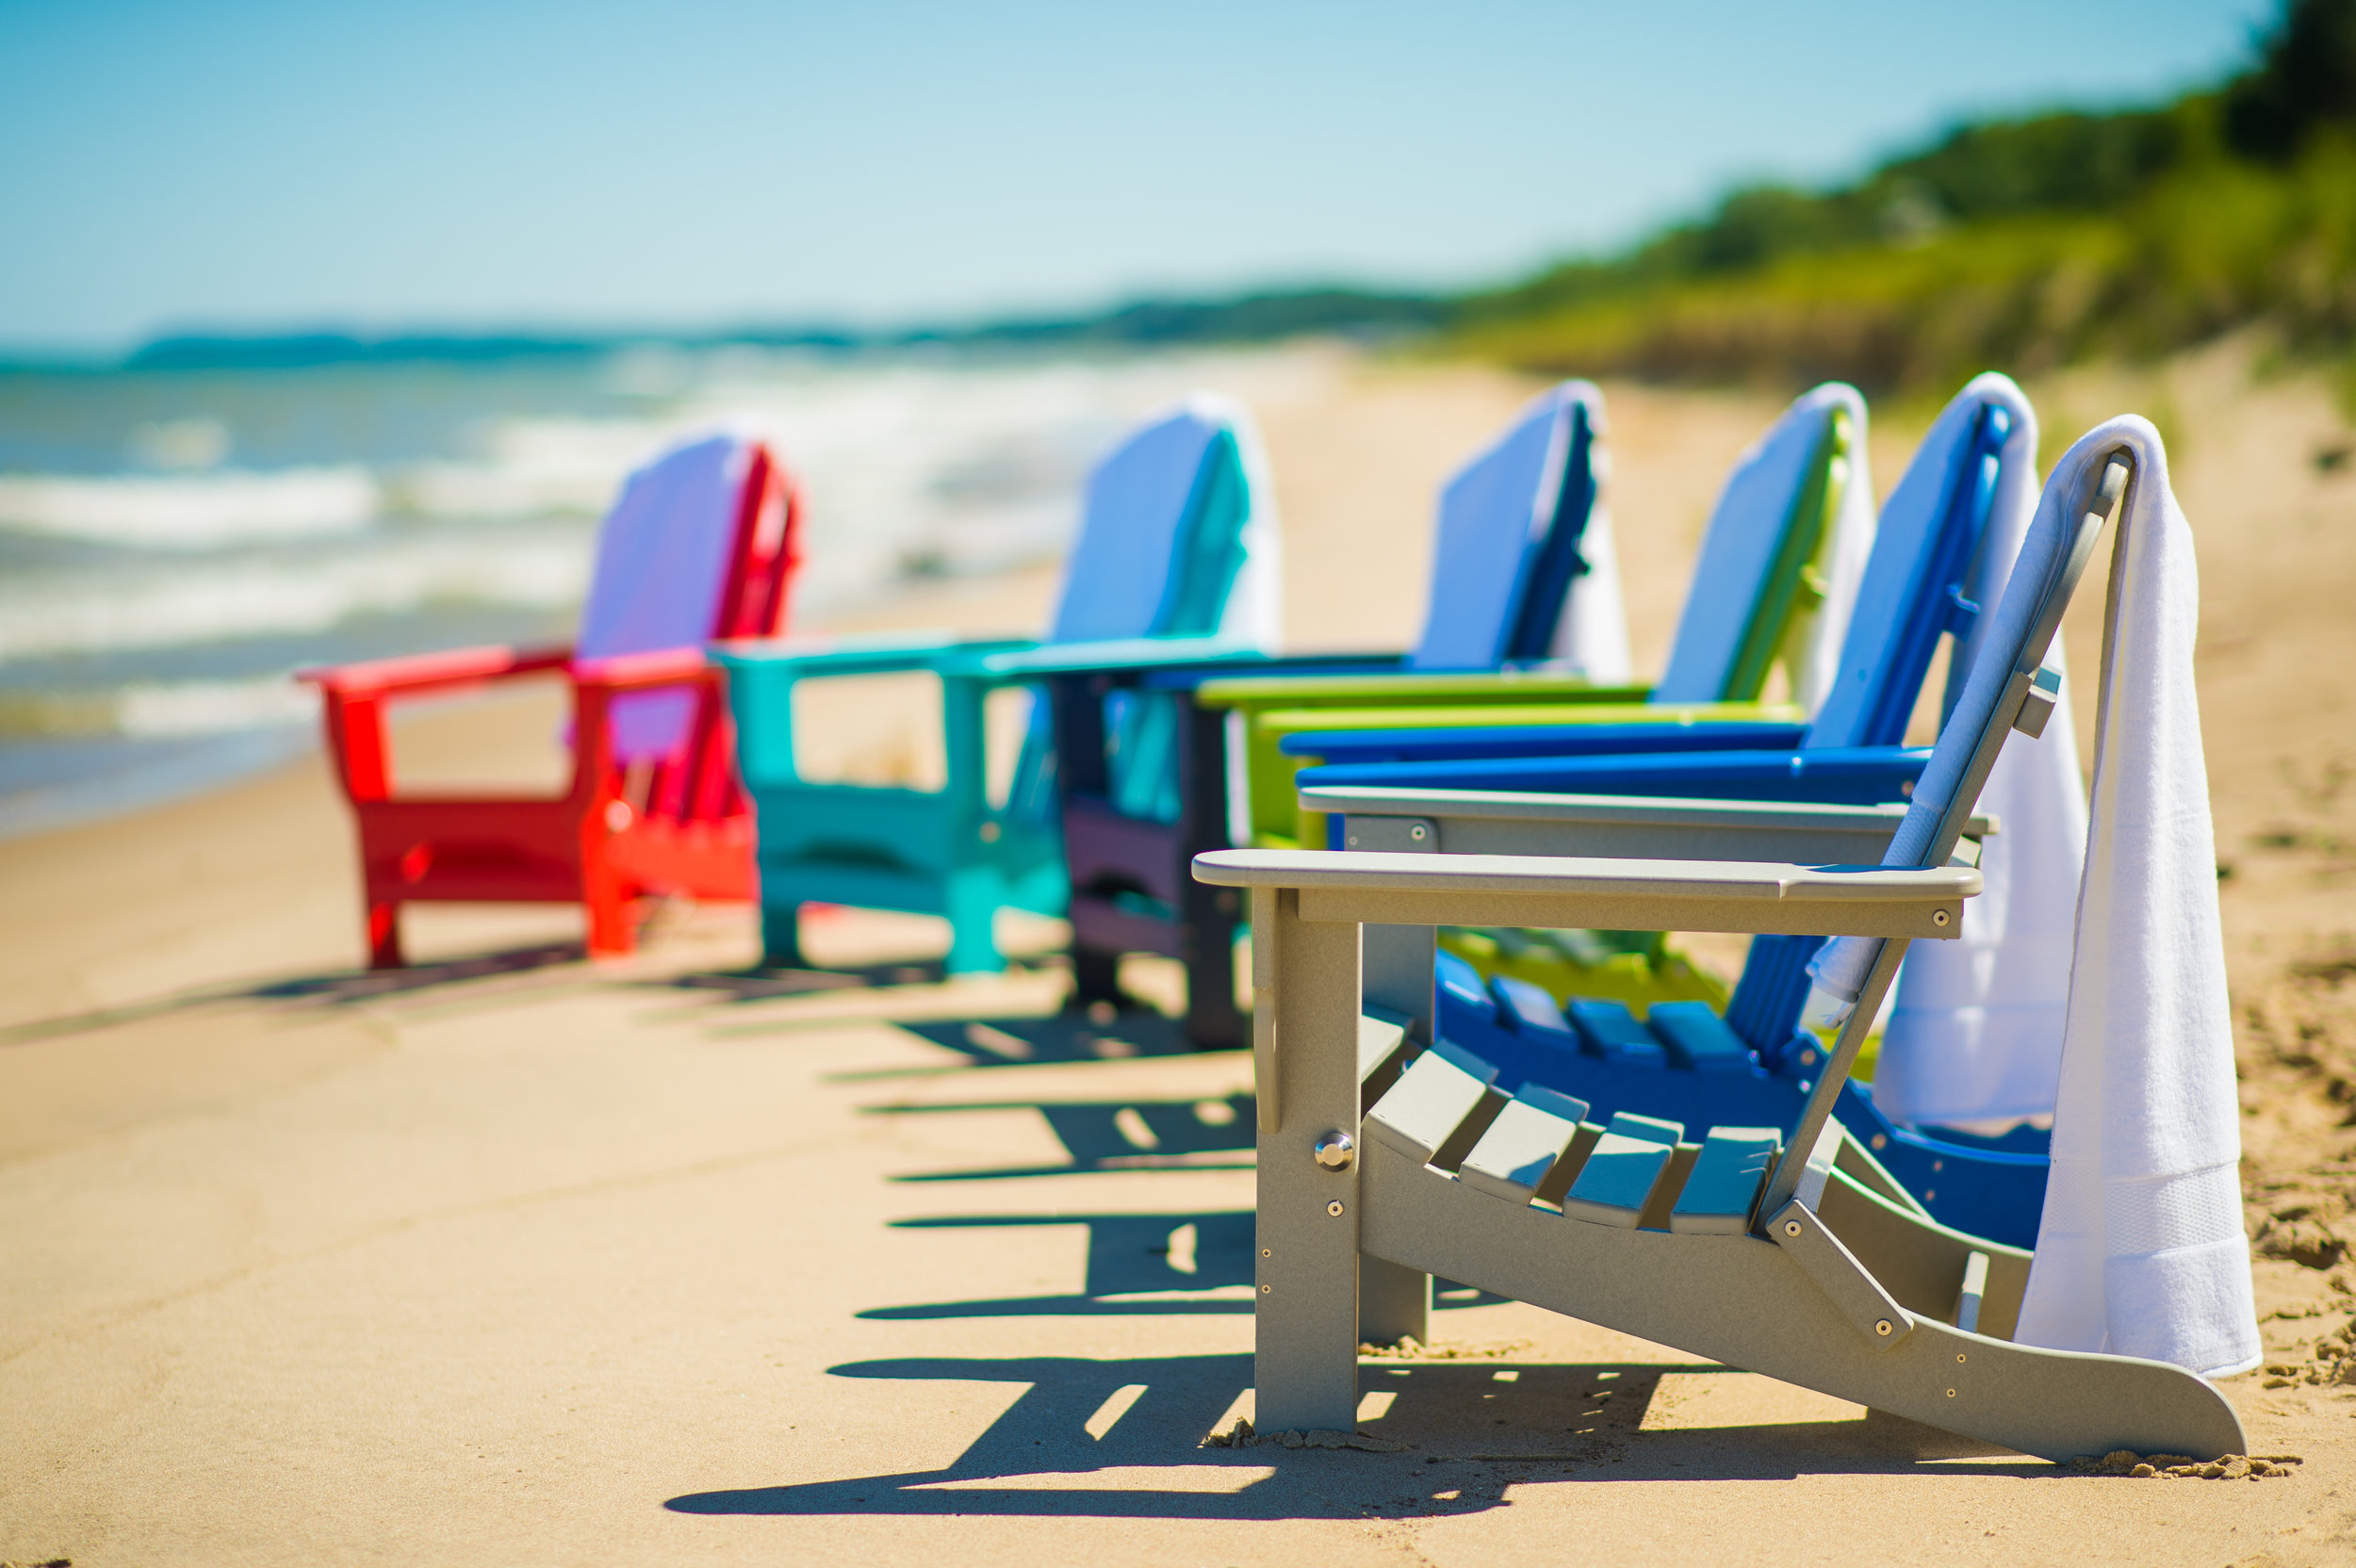 Icon - Capture the beauty of life's moments by enjoying them together in a DuroGreen® Icon Collection Adirondack Chair. Our Adirondack chair strikes the perfect balance of strength and style.Style, shown in our attention to every detail. Our chairs are beautiful, streamlined, and thoughtful. Countless hours of testing and finely-tuned modifications have gone into each of our designs.Strength, demonstrated in the quality of our materials. We use premium recycled HDPE lumber, stainless steel hardware, and quality craftsmanship. Our Icon Collection Adirondack chairs can stand up to changing seasons and extreme outdoor elements. You won't have to worry about warping, rotting, cracking, chipping, or splintering anymore. Our recycled material is resistant to the elements that destroy traditional wood designs.